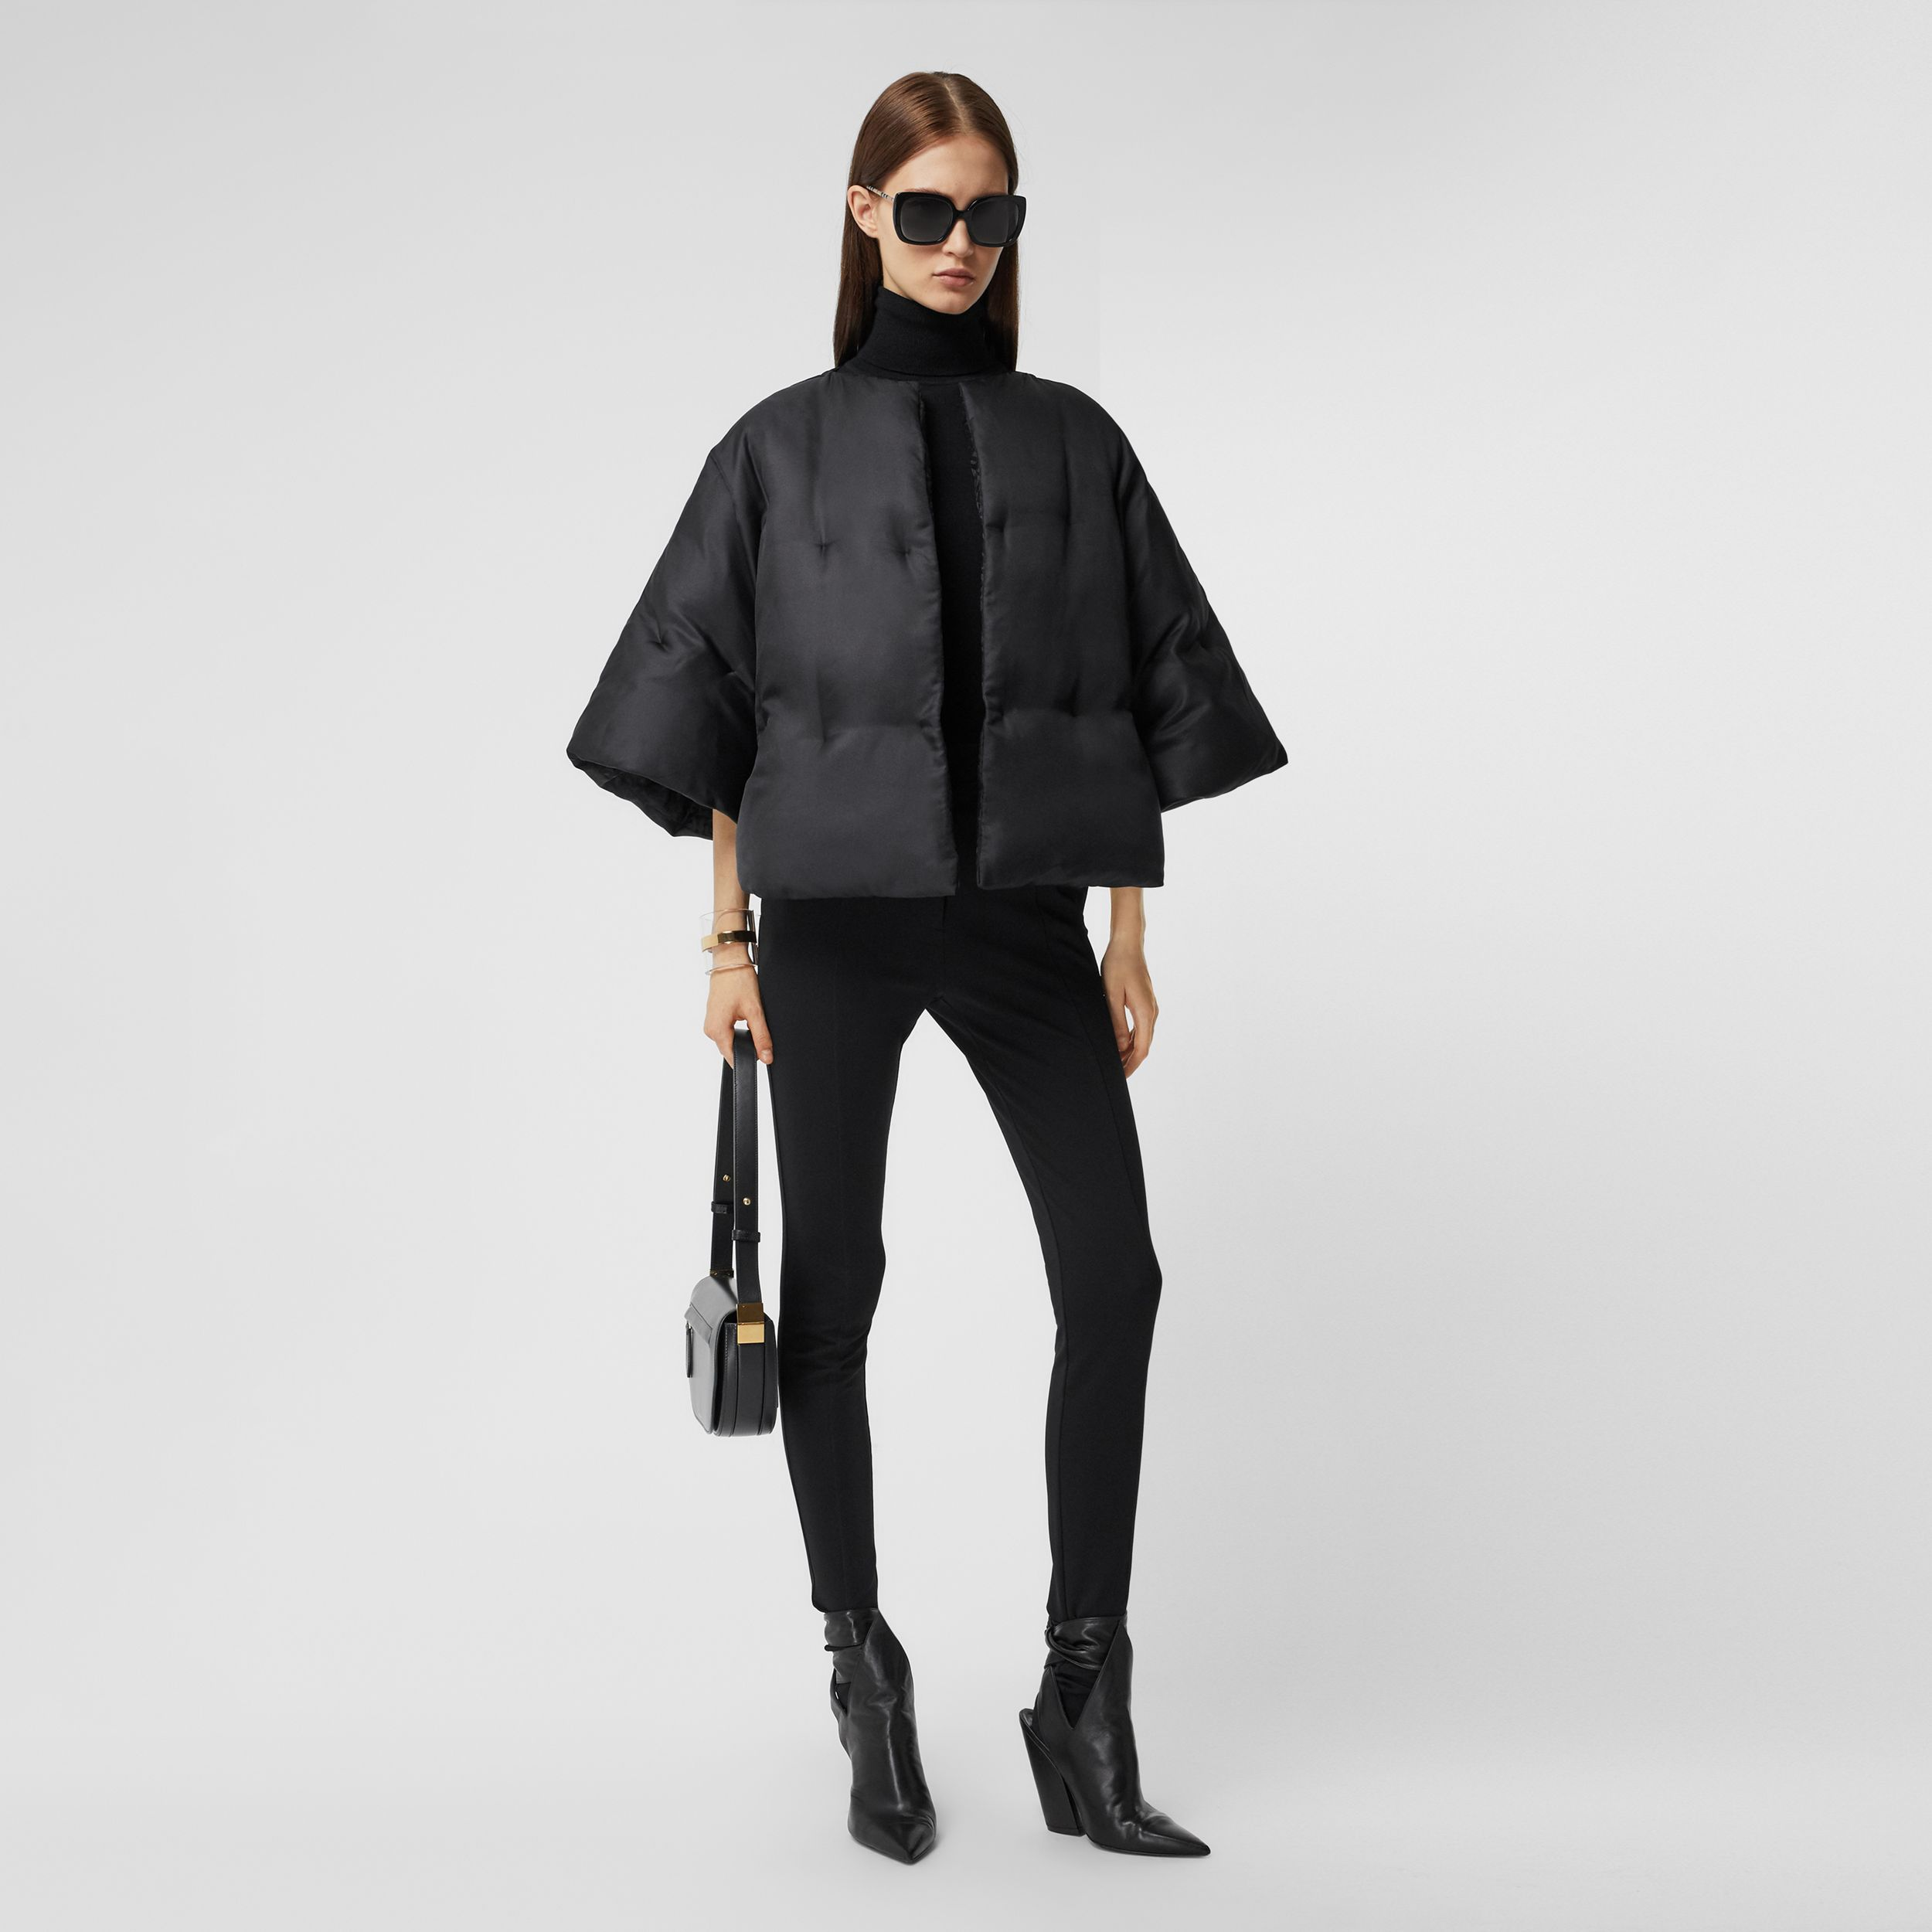 Silk Twill Puffer Cape in Black - Women | Burberry - 1